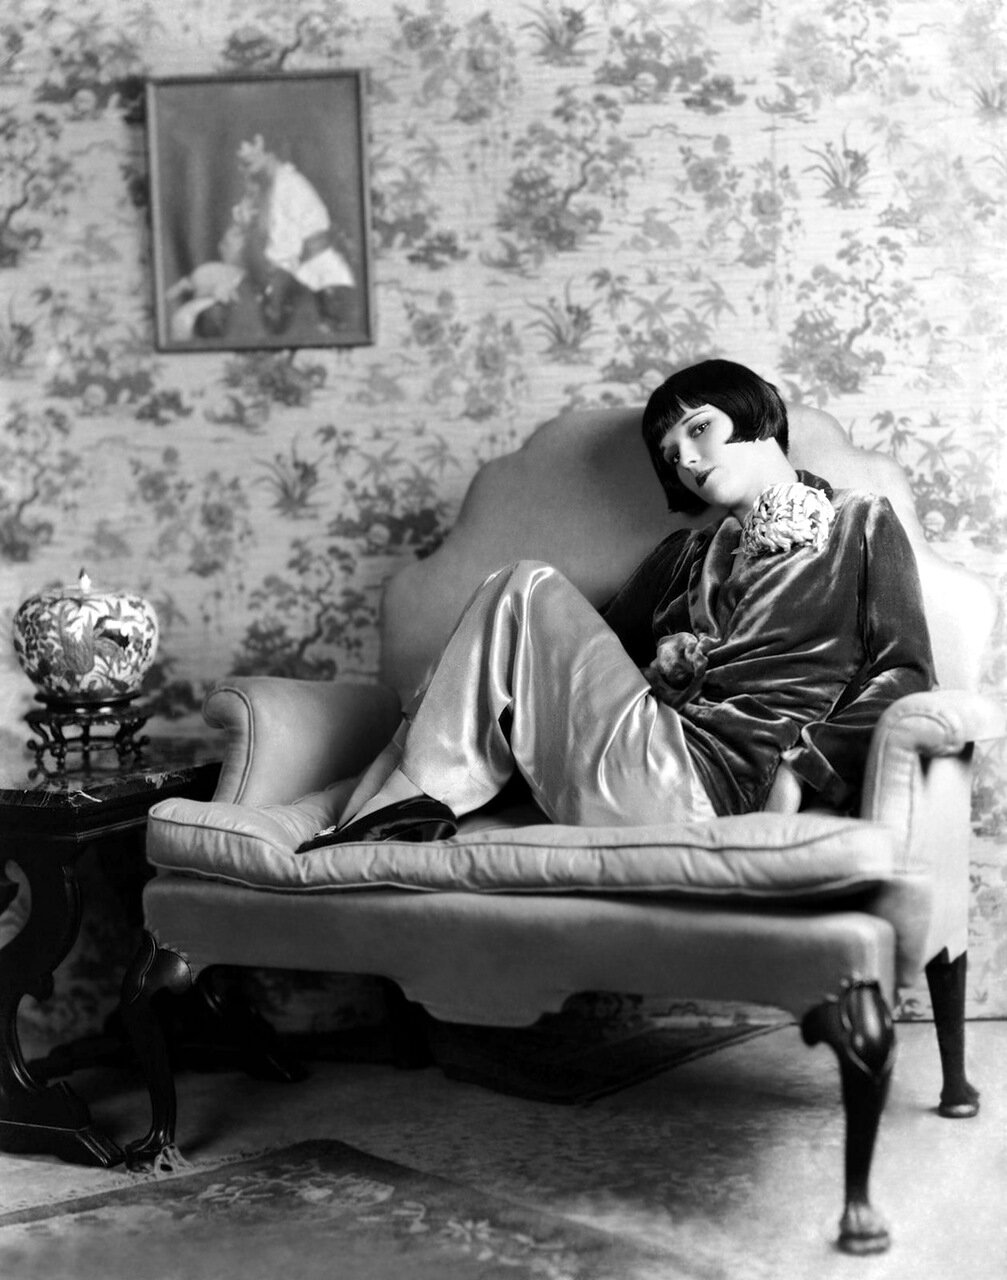 circa 1928: American actress Louise Brooks (1906 - 1985) lounging on a large leather armchair. (Photo by Eugene Robert Richee)